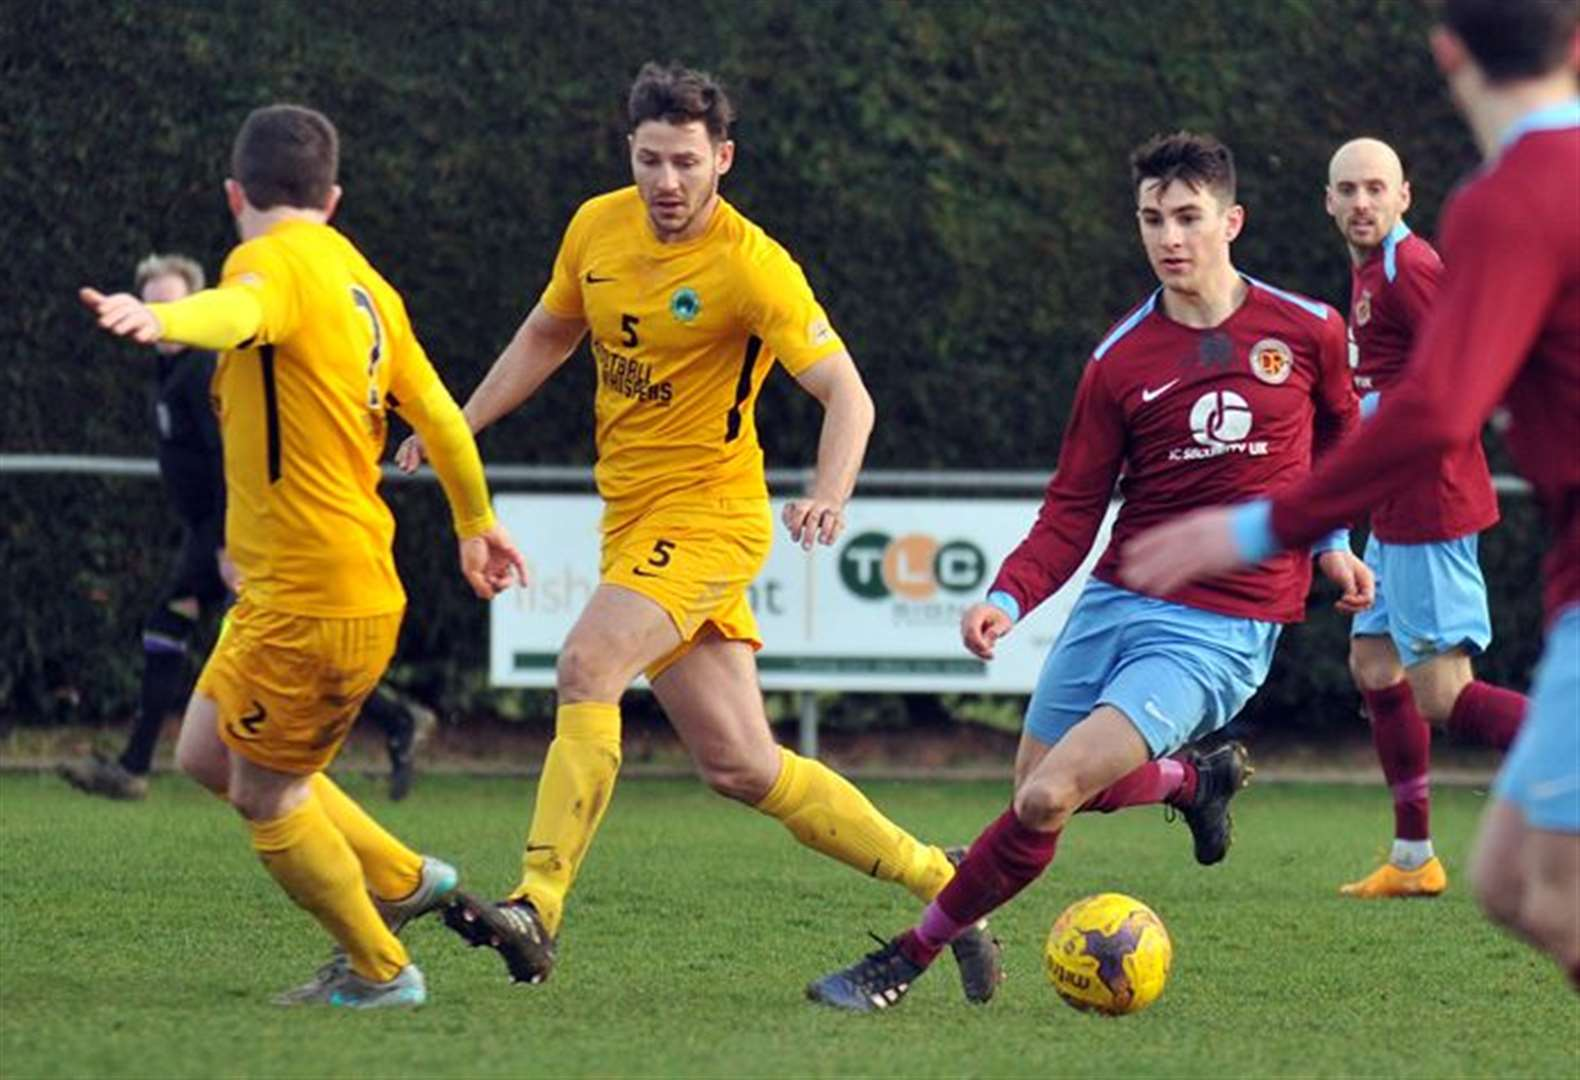 FOOTBALL: Clarets return to winning ways as Dunn delivers fine finish